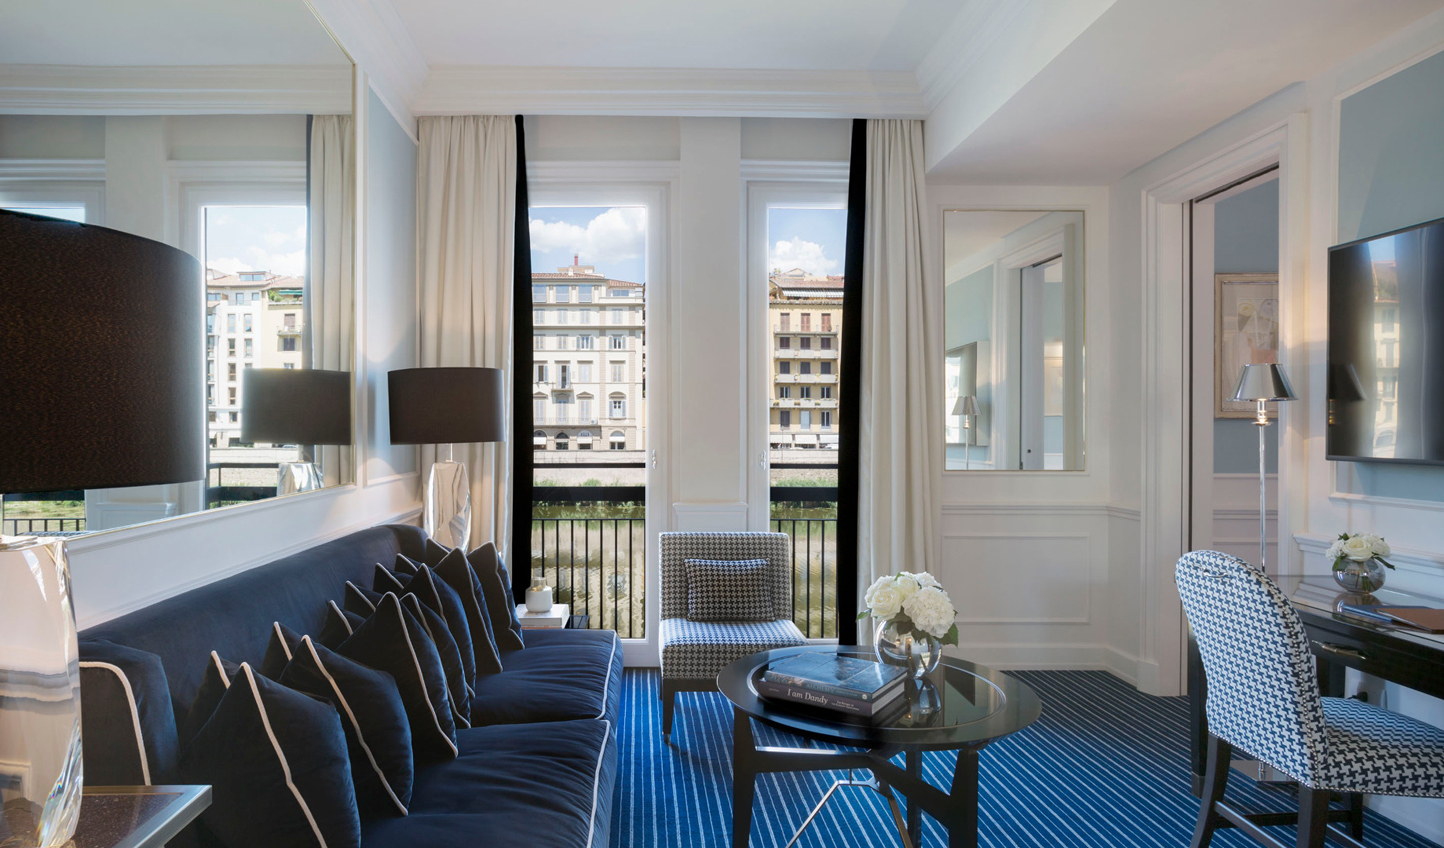 La Dolce Vita makes for suite living